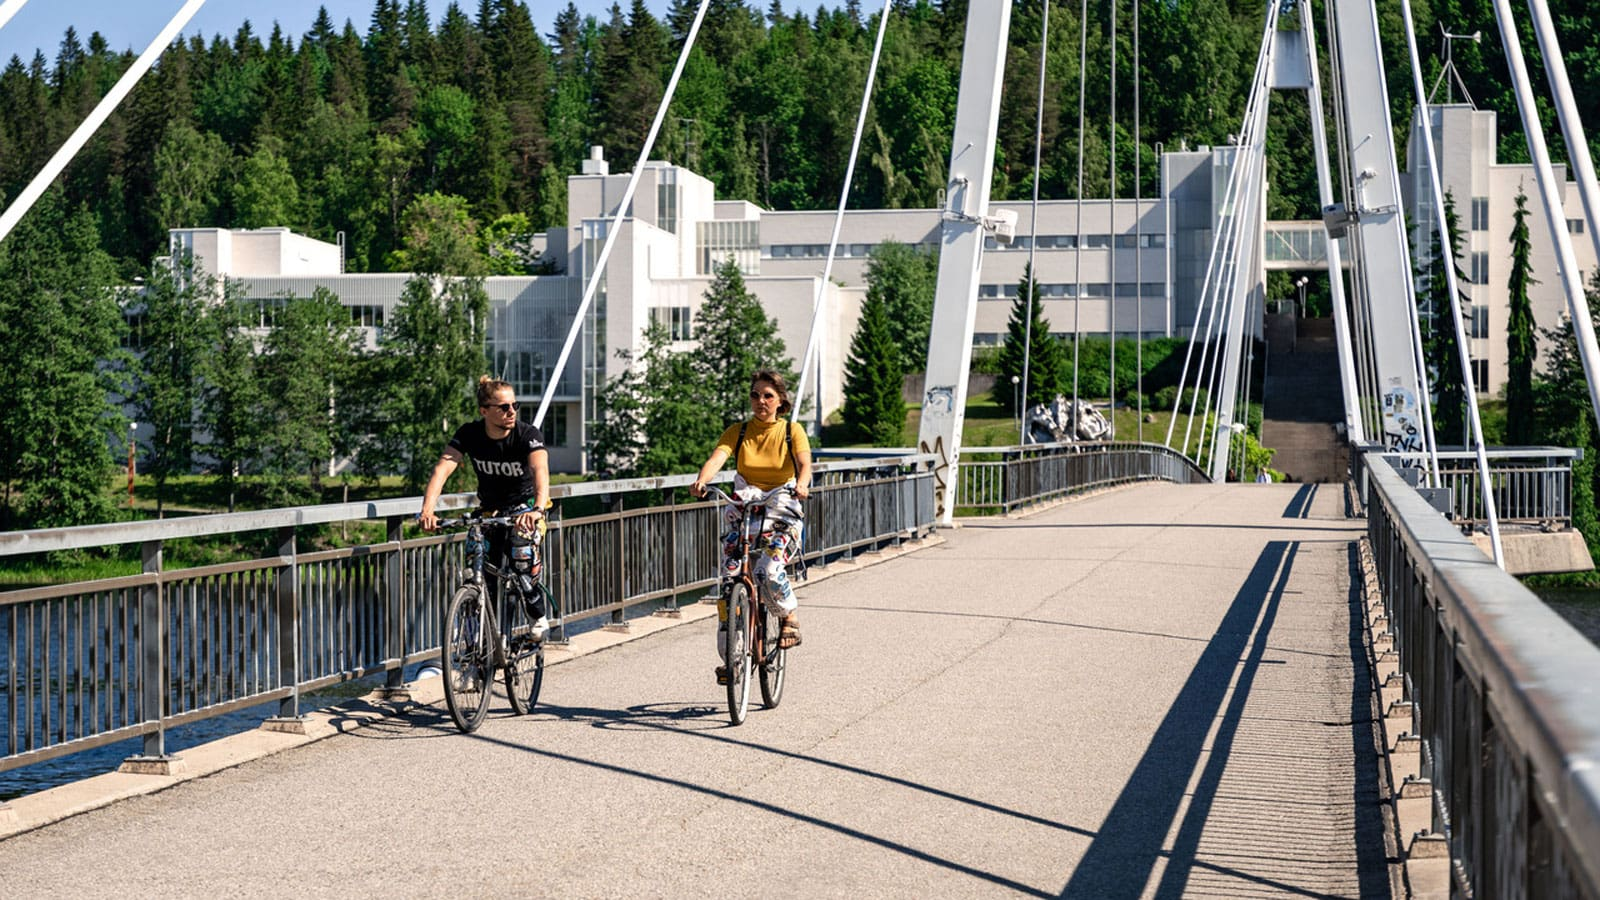 Two persons cycling on the bridge.